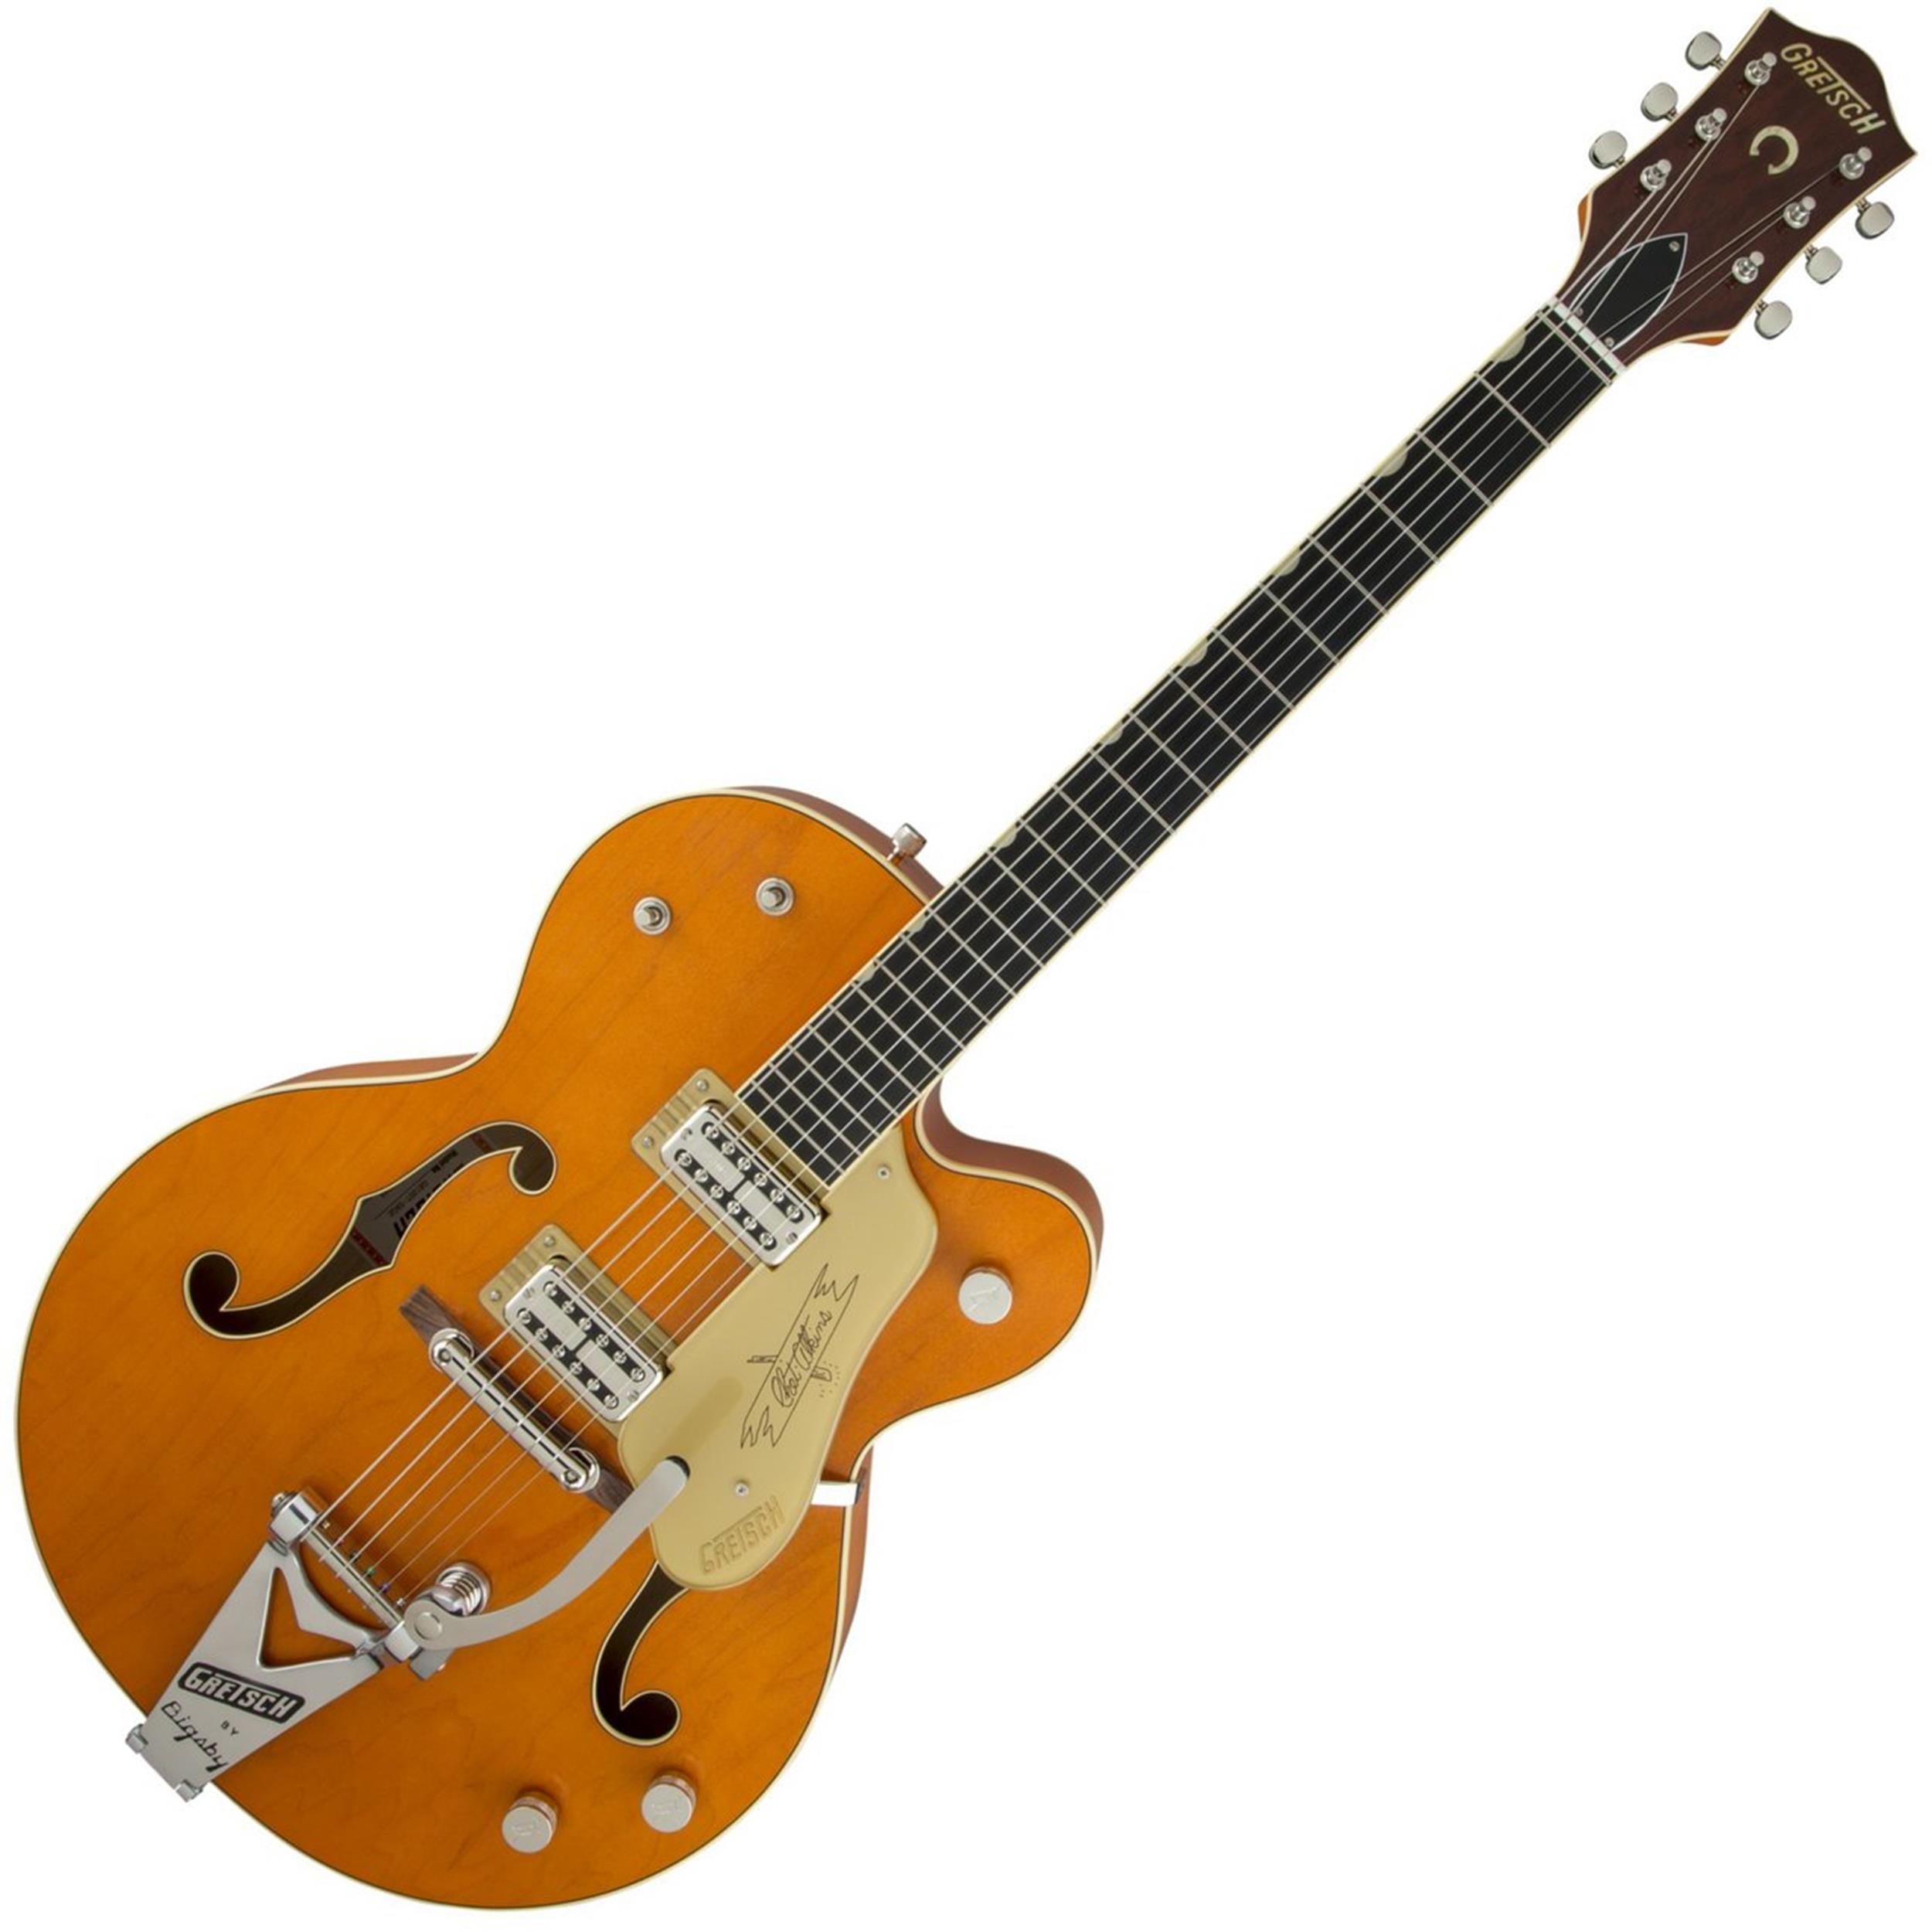 GRETSCH G6120T- Vintage Select Edition 59 Chet Atkins Hollow Body - Orange Stain Lacquer  2401353822